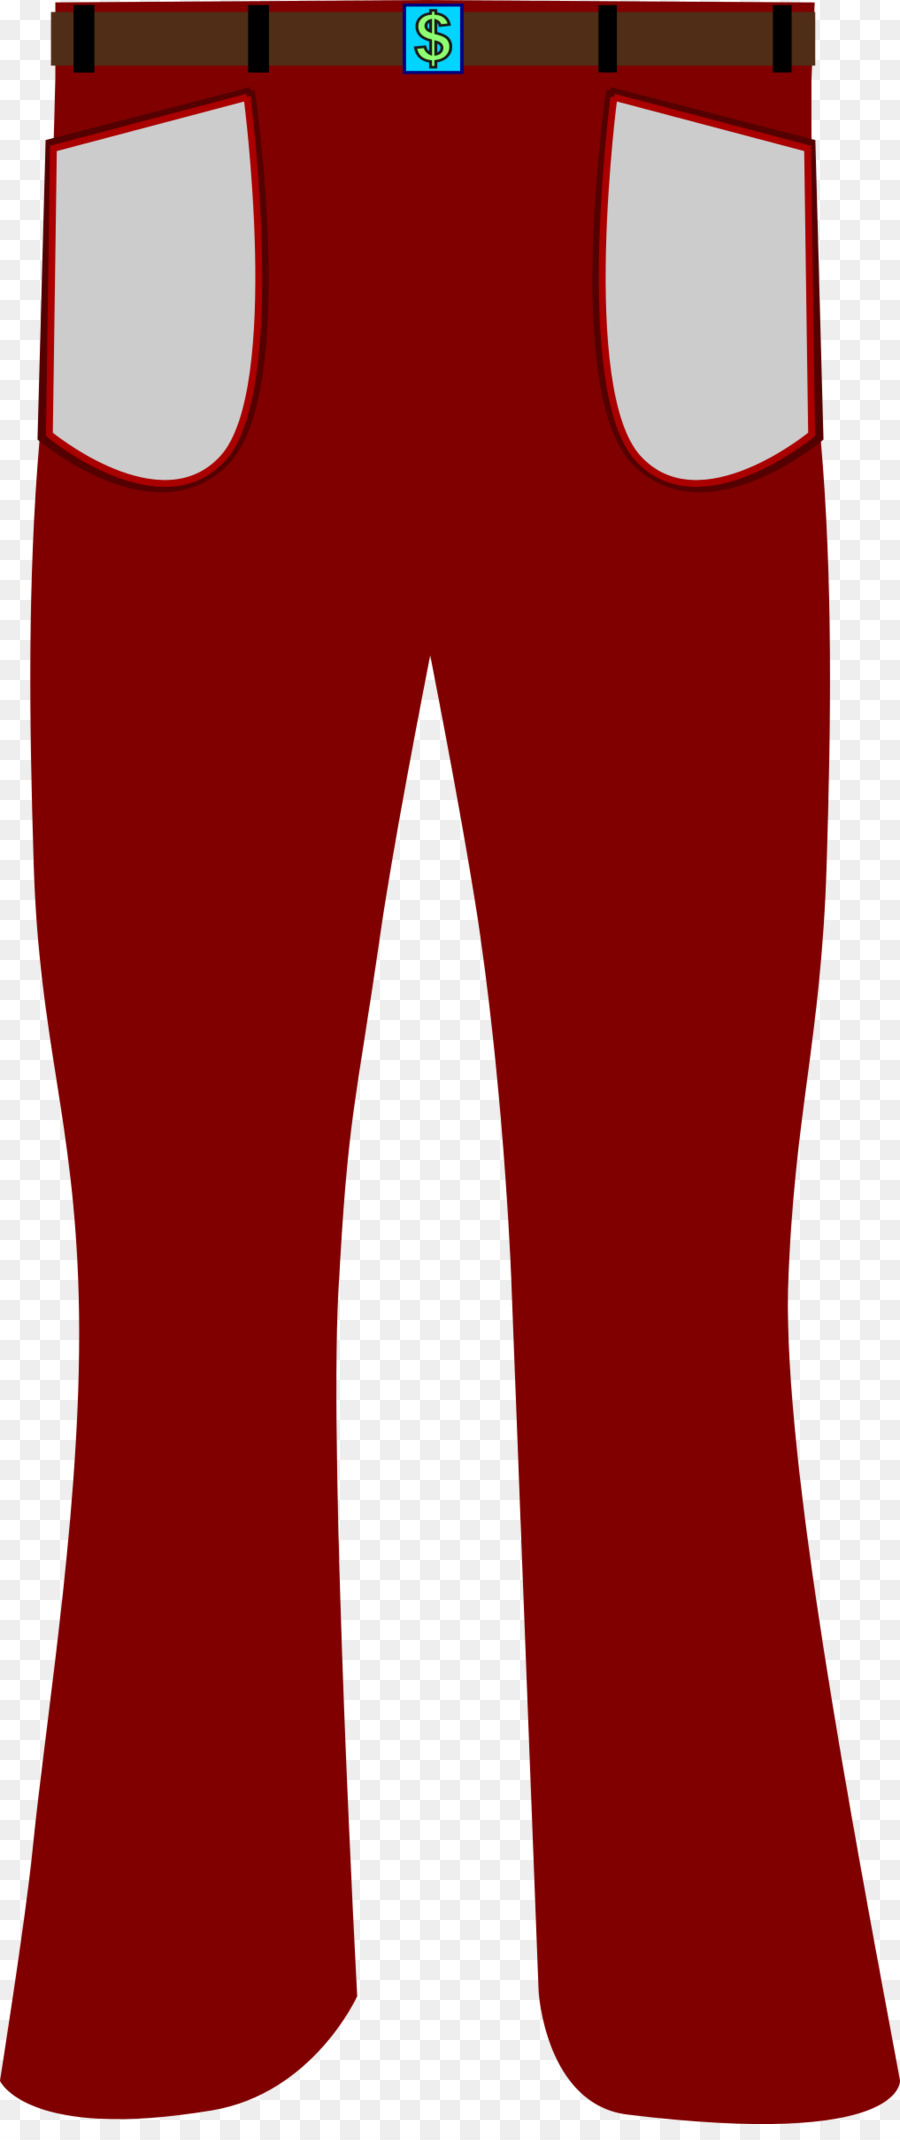 Jeans cartoon tshirt clothing. Clipart pants red pants